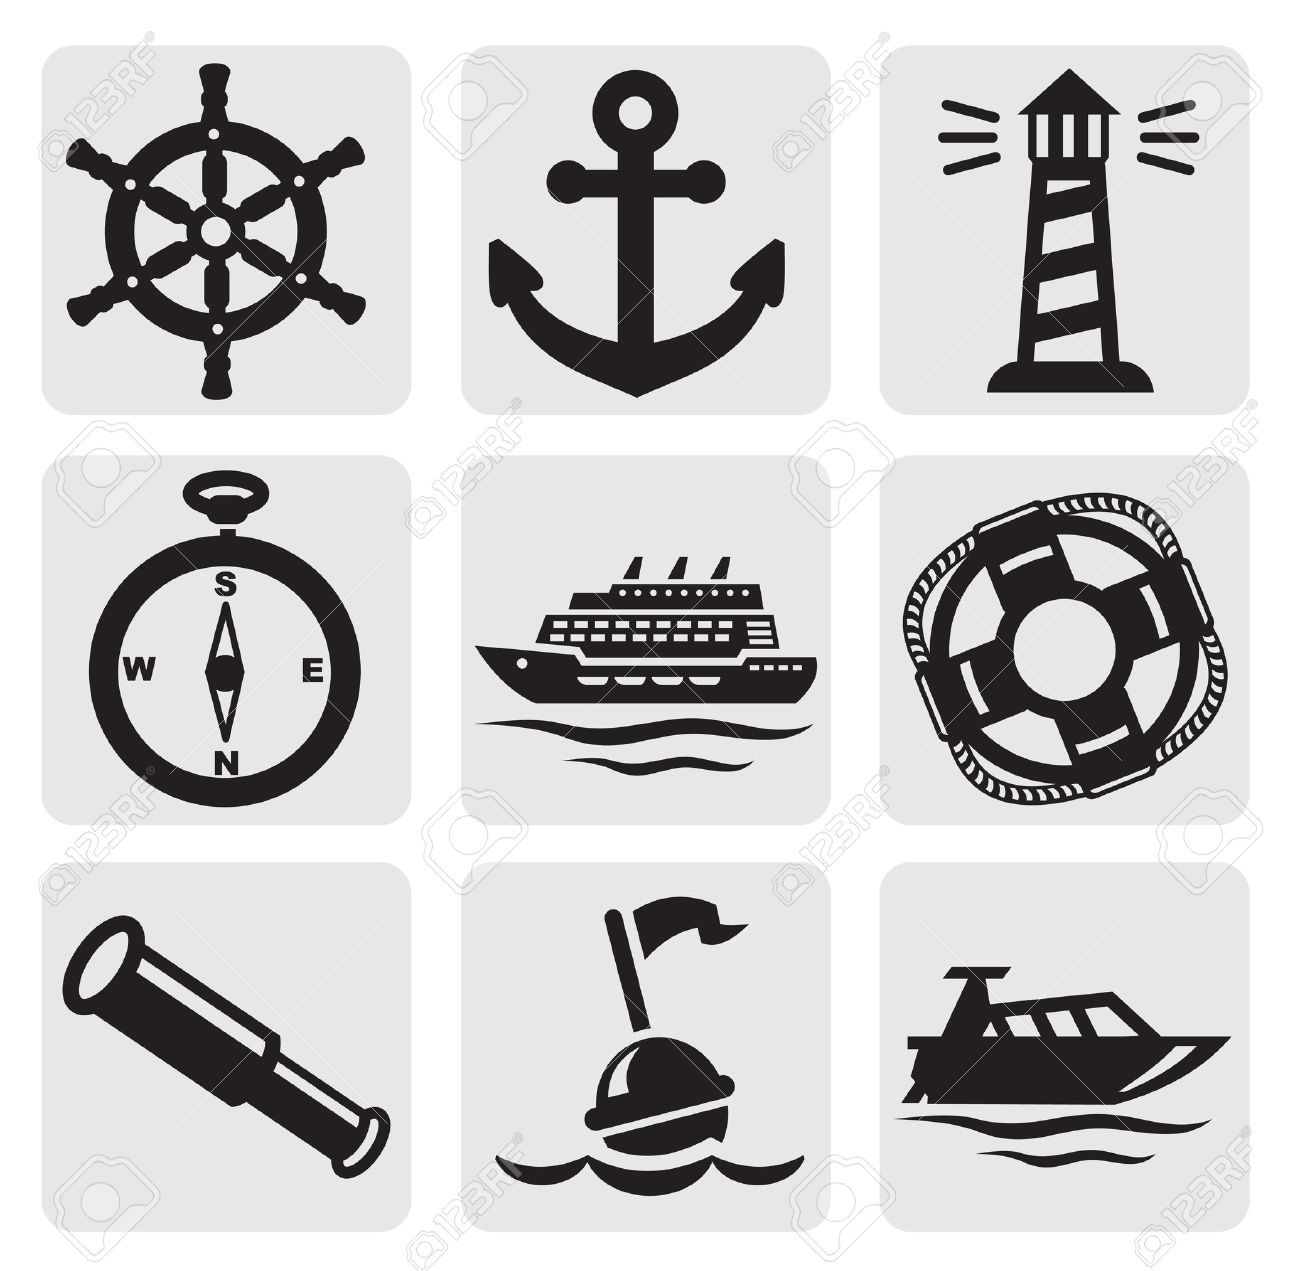 Clipart anchor seaman logo. Images stock pictures royalty